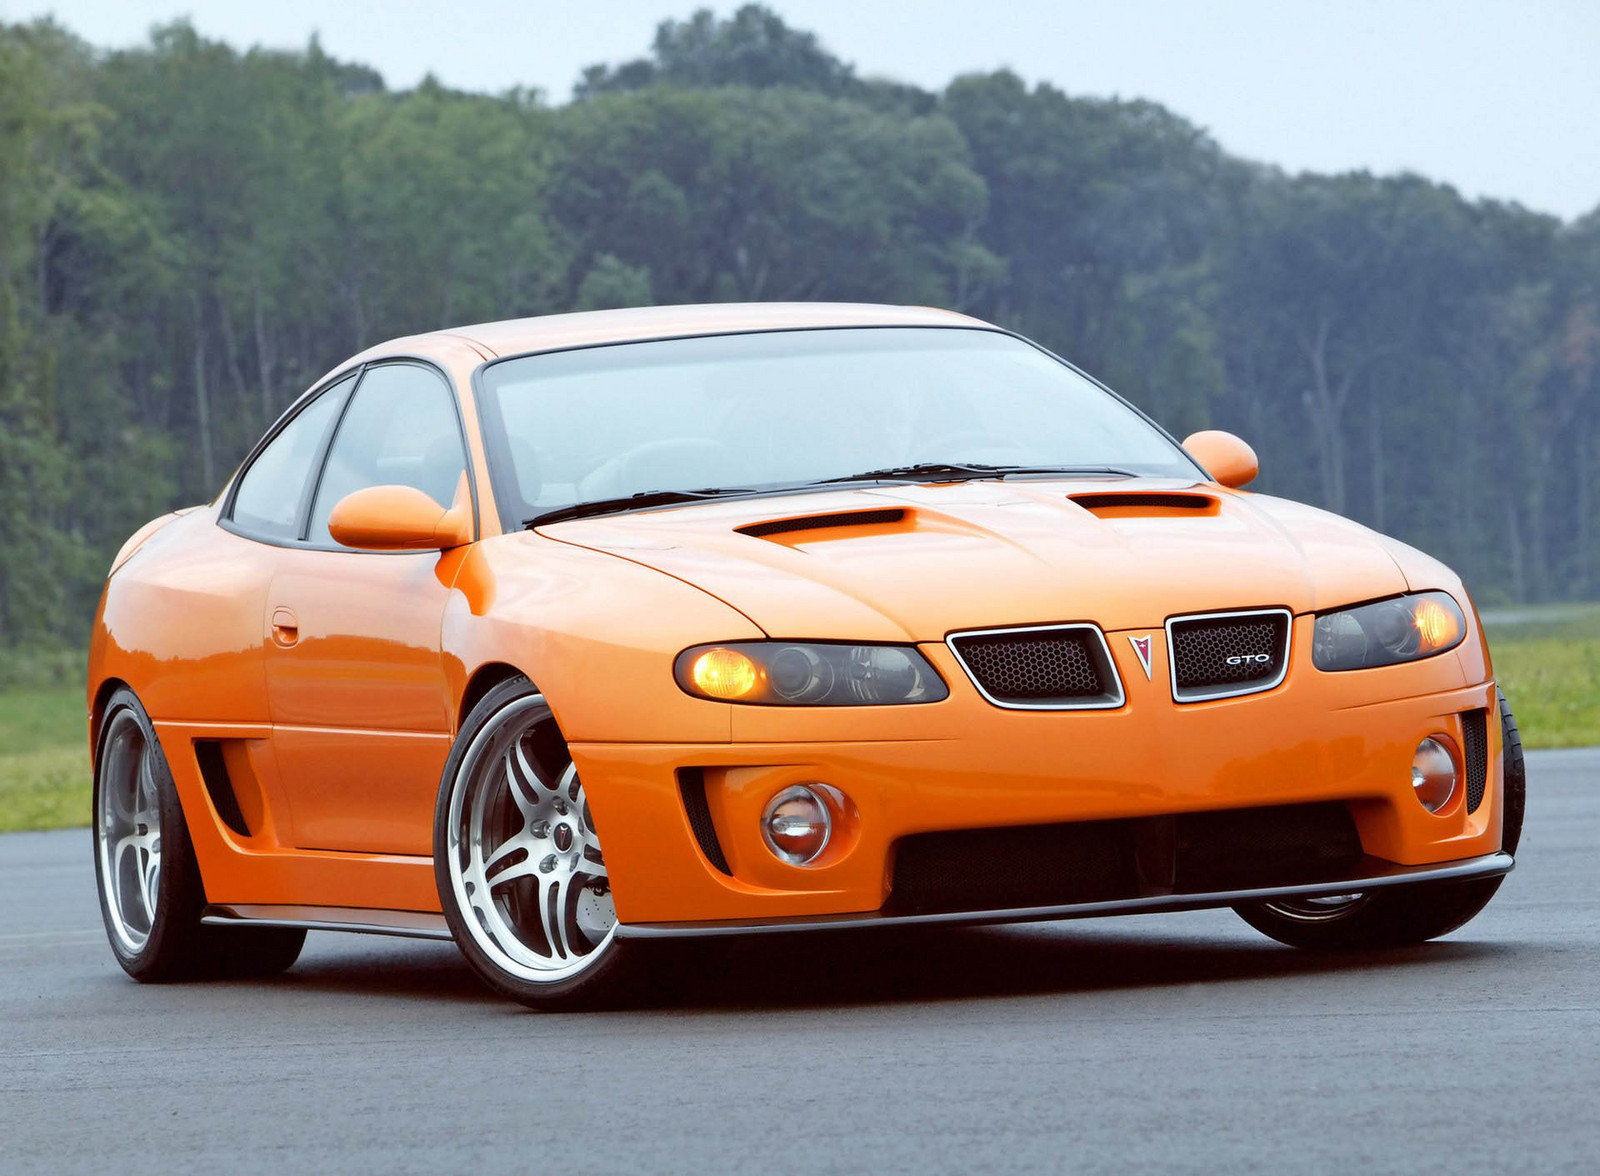 2004 pontiac gto ram air 6 picture 12505 car review. Black Bedroom Furniture Sets. Home Design Ideas